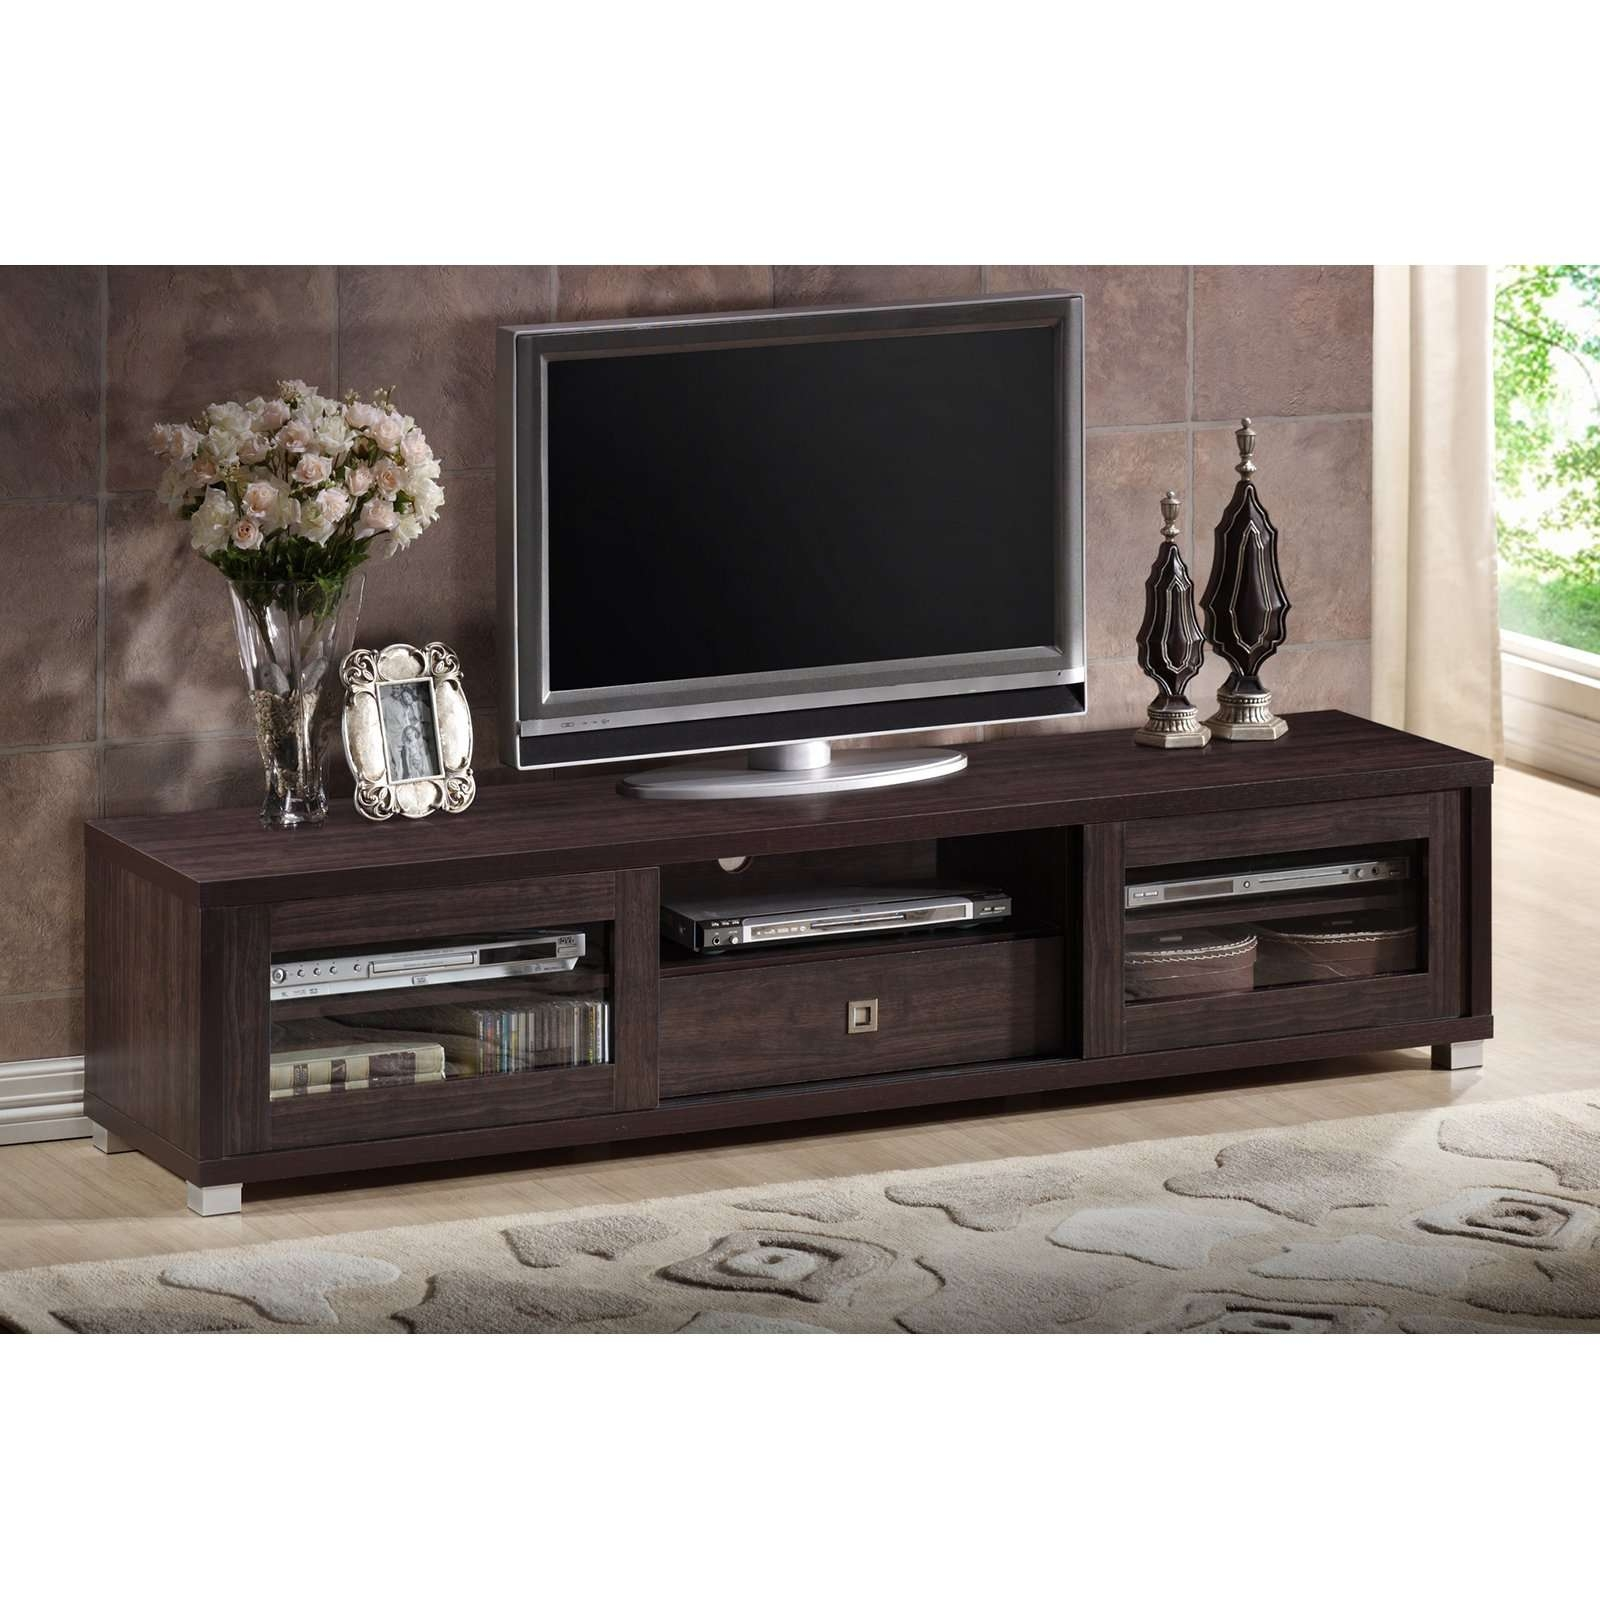 Wholesale Interiors Sculpten Dark Brown Modern Tv Stand With Glass With Regard To Brown Tv Stands (View 2 of 20)